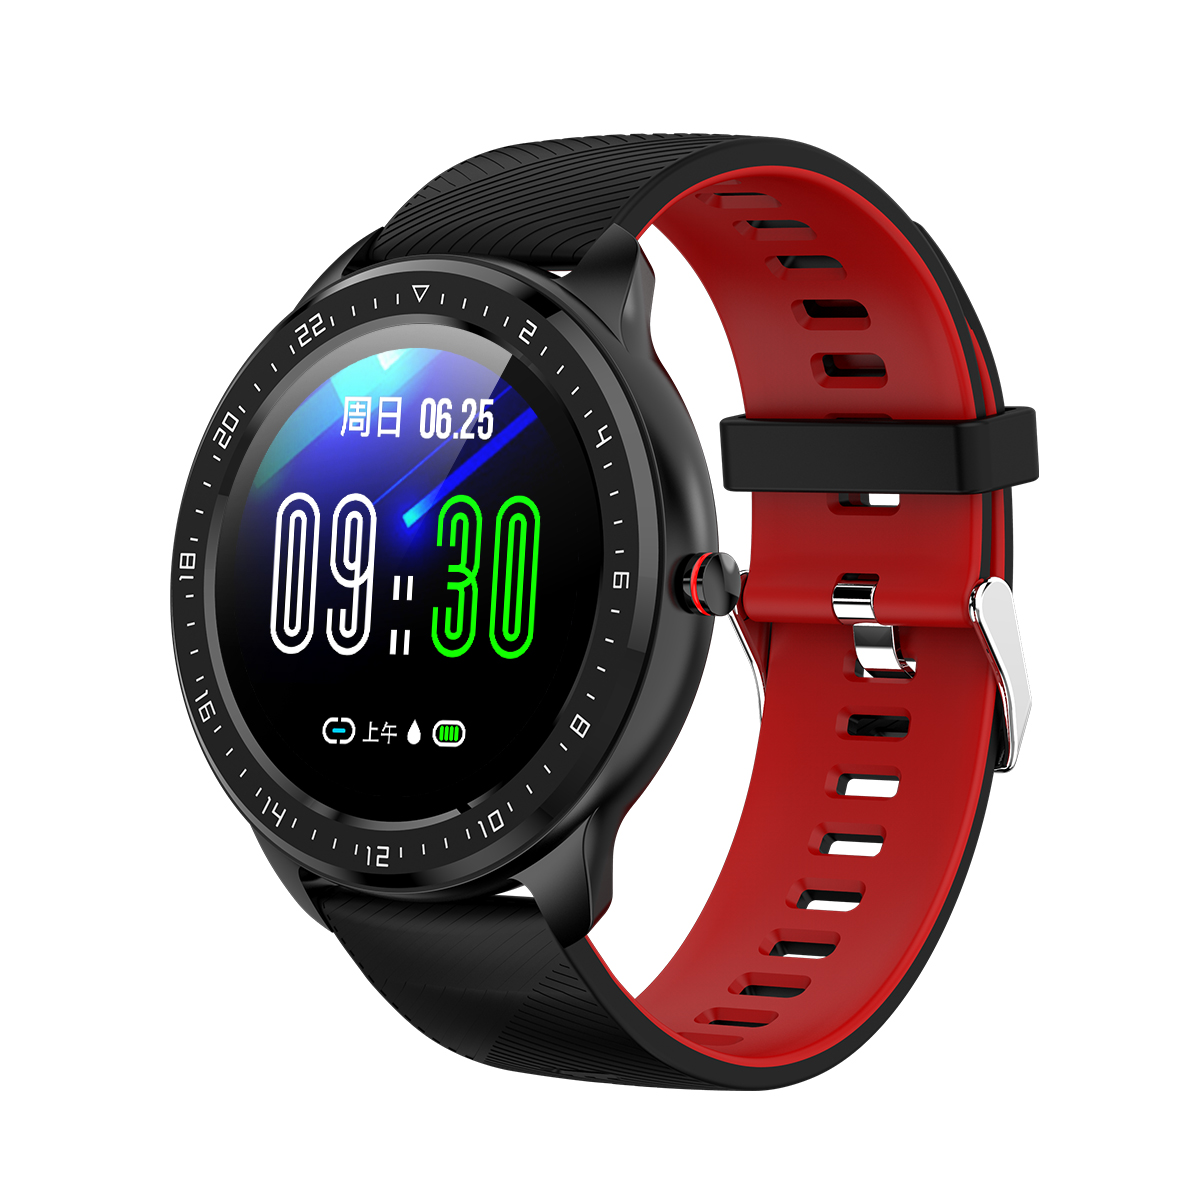 Fashion Style <strong>Z06</strong> Smart Watch Blood Pressure Health Activity Fitness Tracker Watch Wearable For Xiaomi IOS Android Mobile